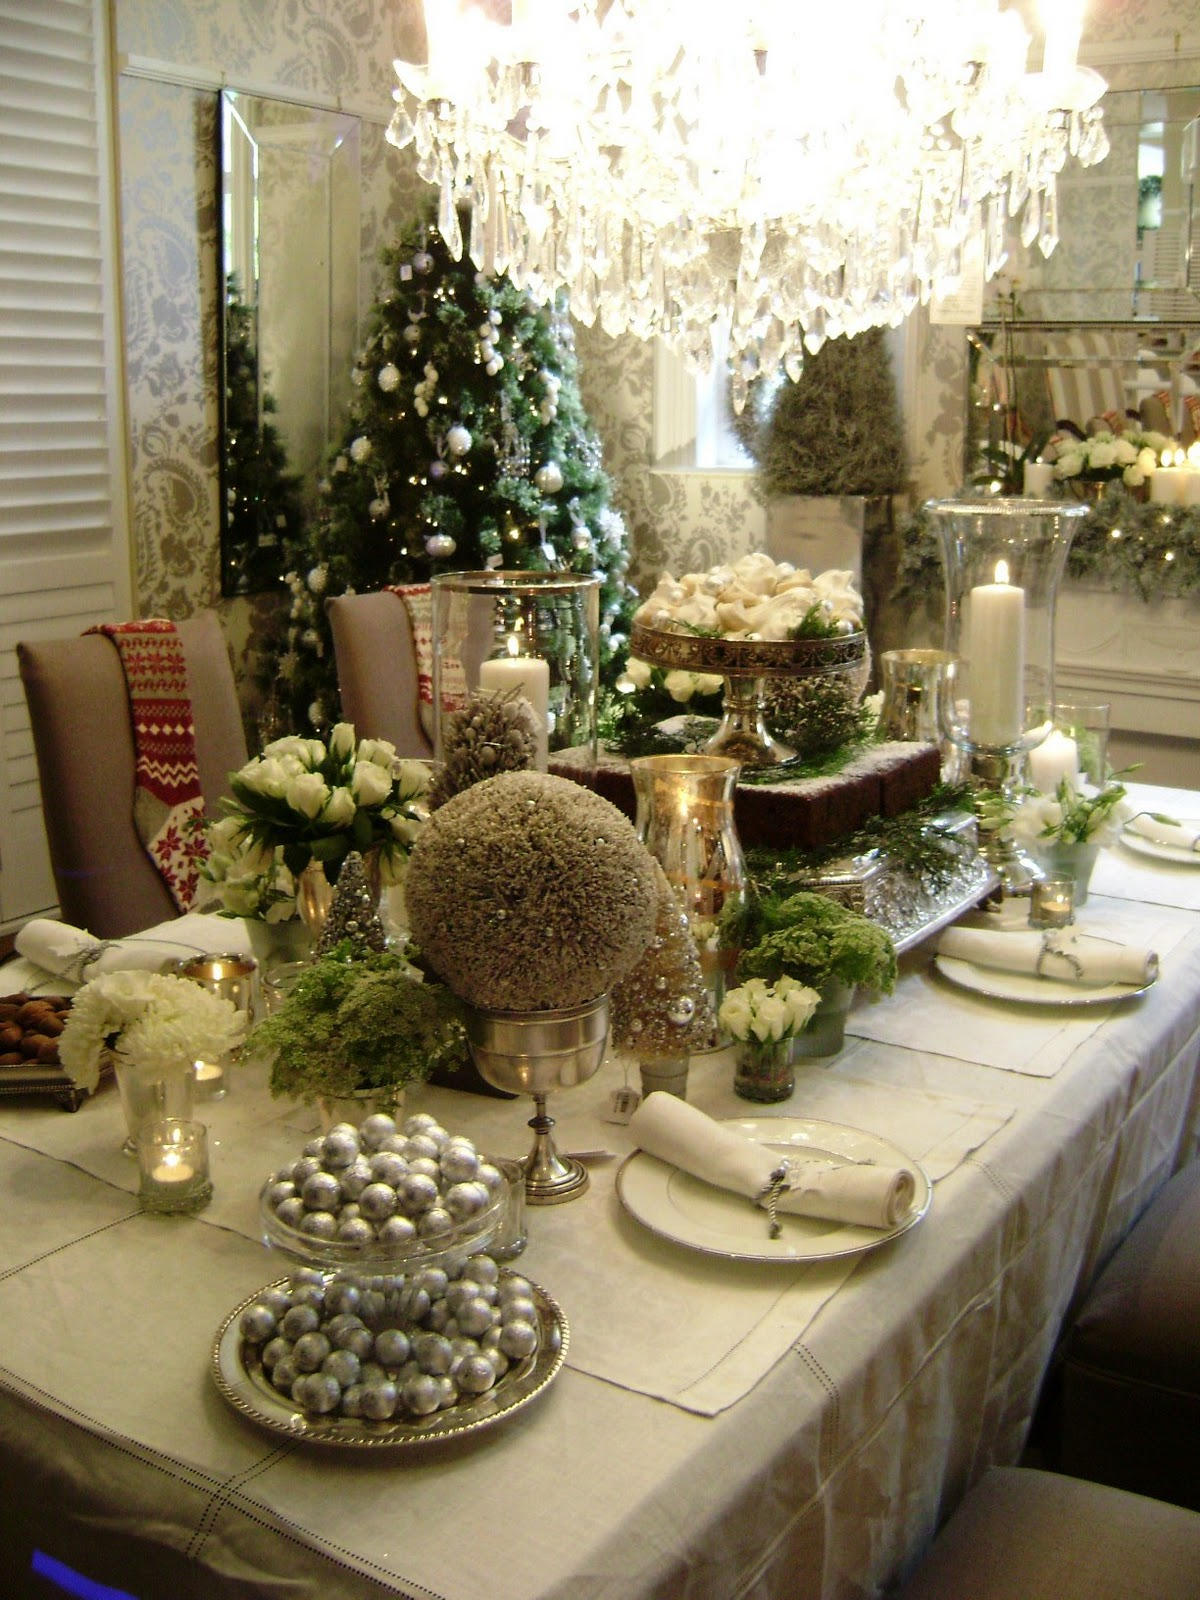 Charcoal interiors style in the city dec 17 2010 - Christmas table setting ideas ...